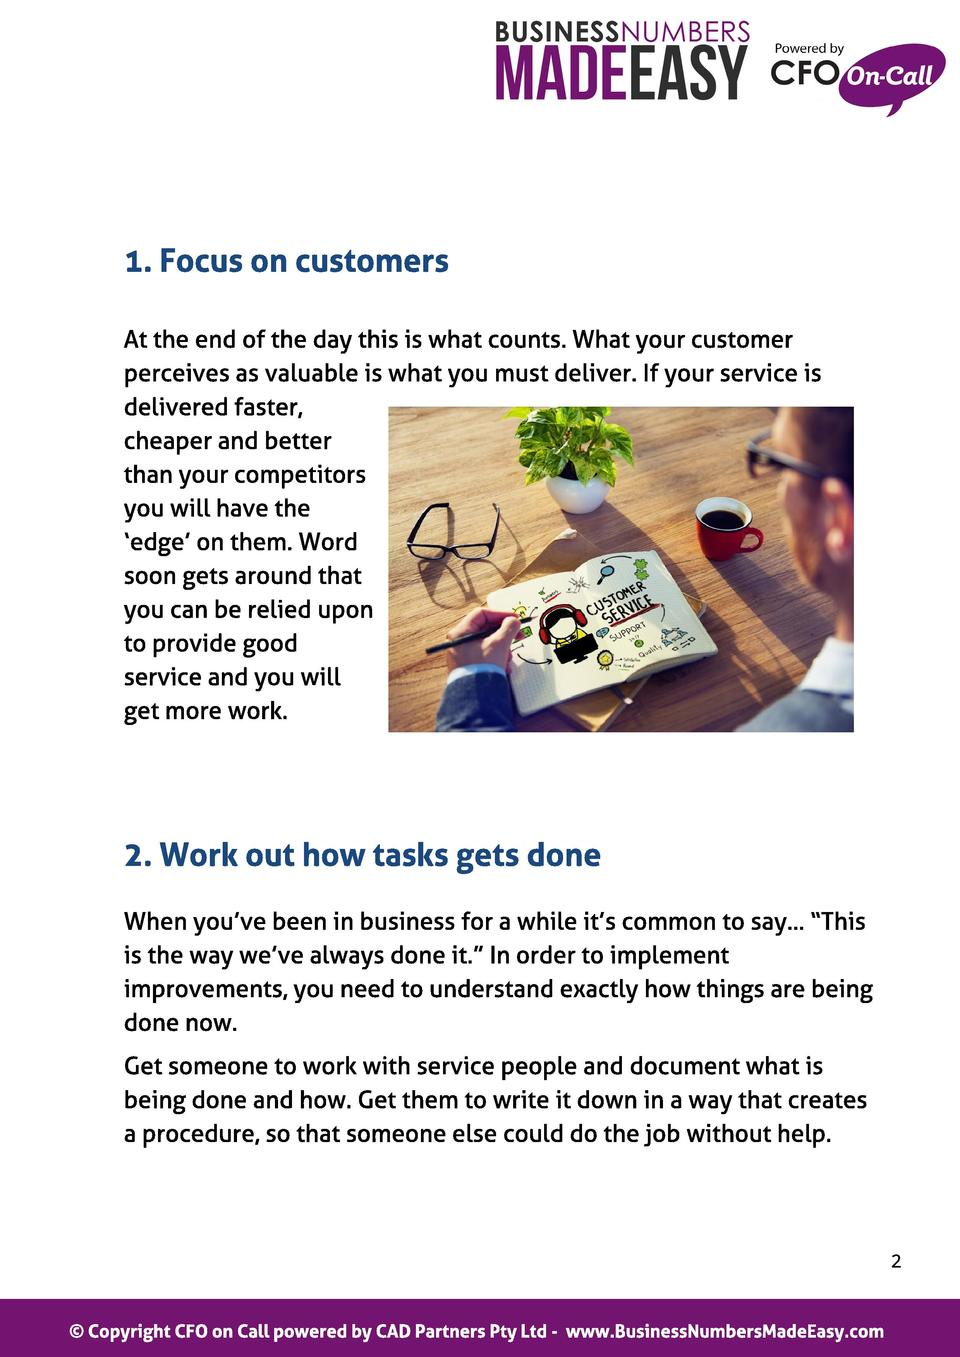 1. Focus on cust omers At the end of the day this is what counts. What your customer perceives as valuable is what you mus...